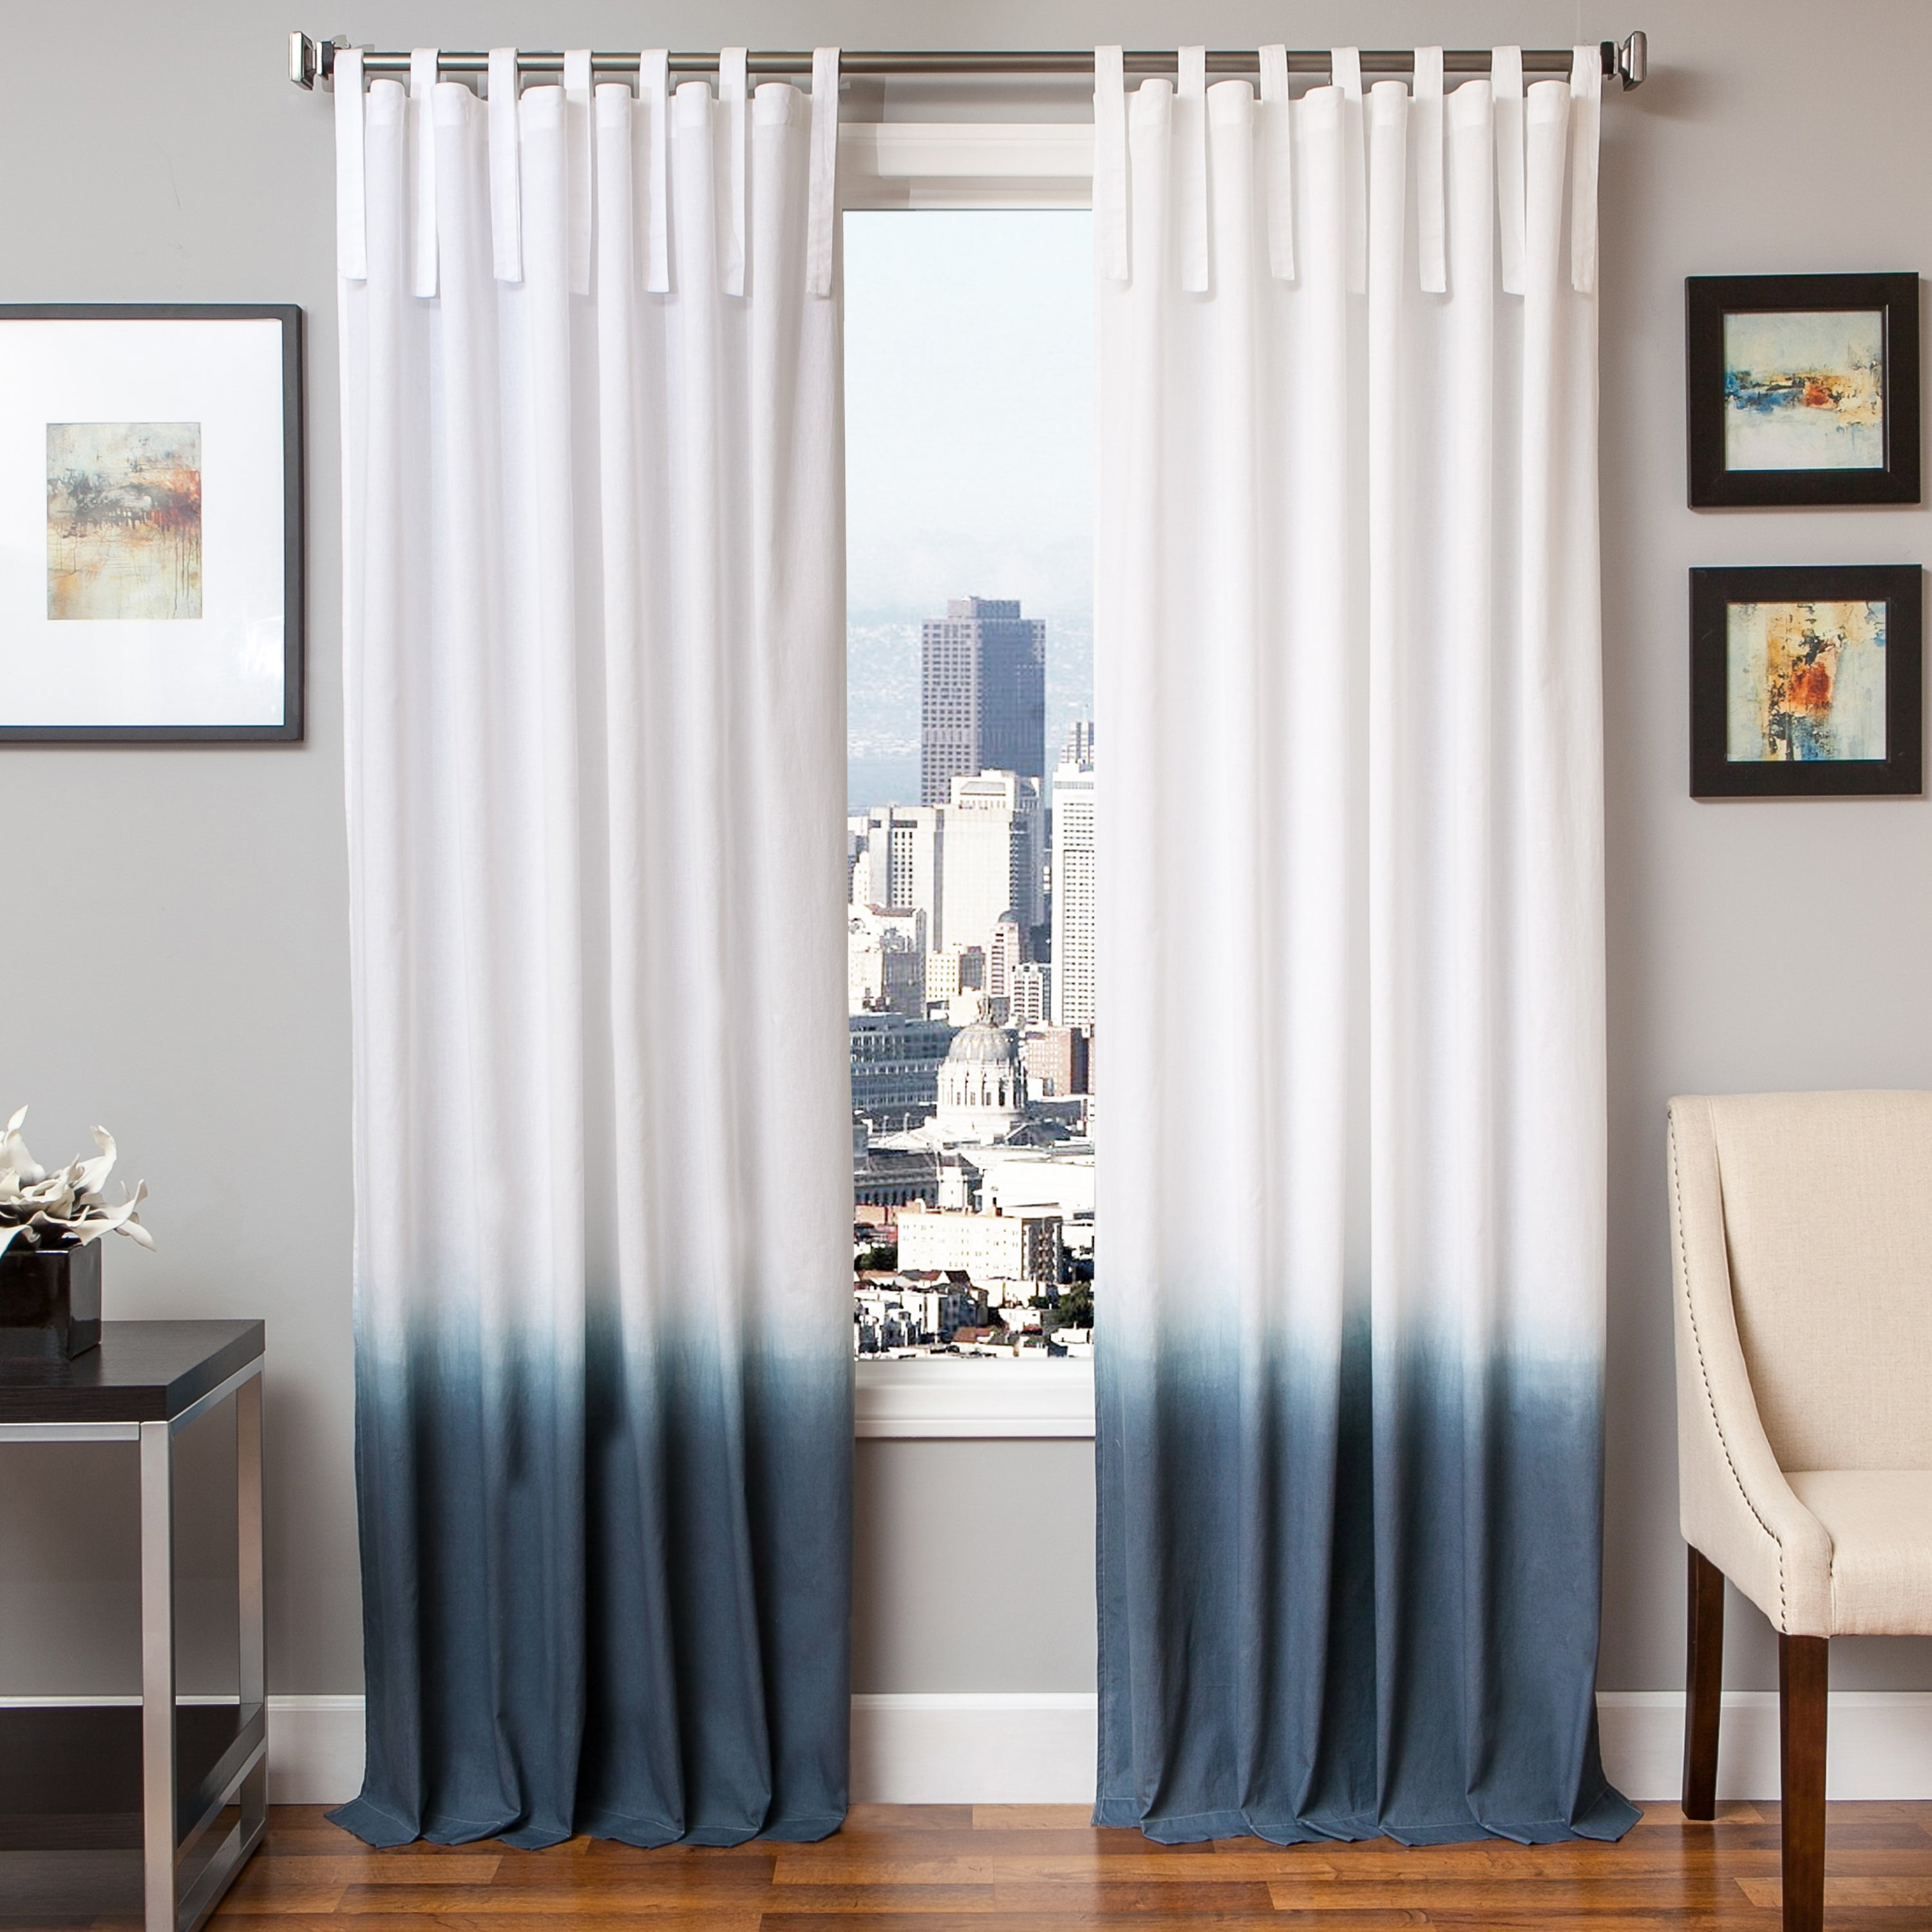 waterfall curtains ombre valance panels semi curtain p sheer valances